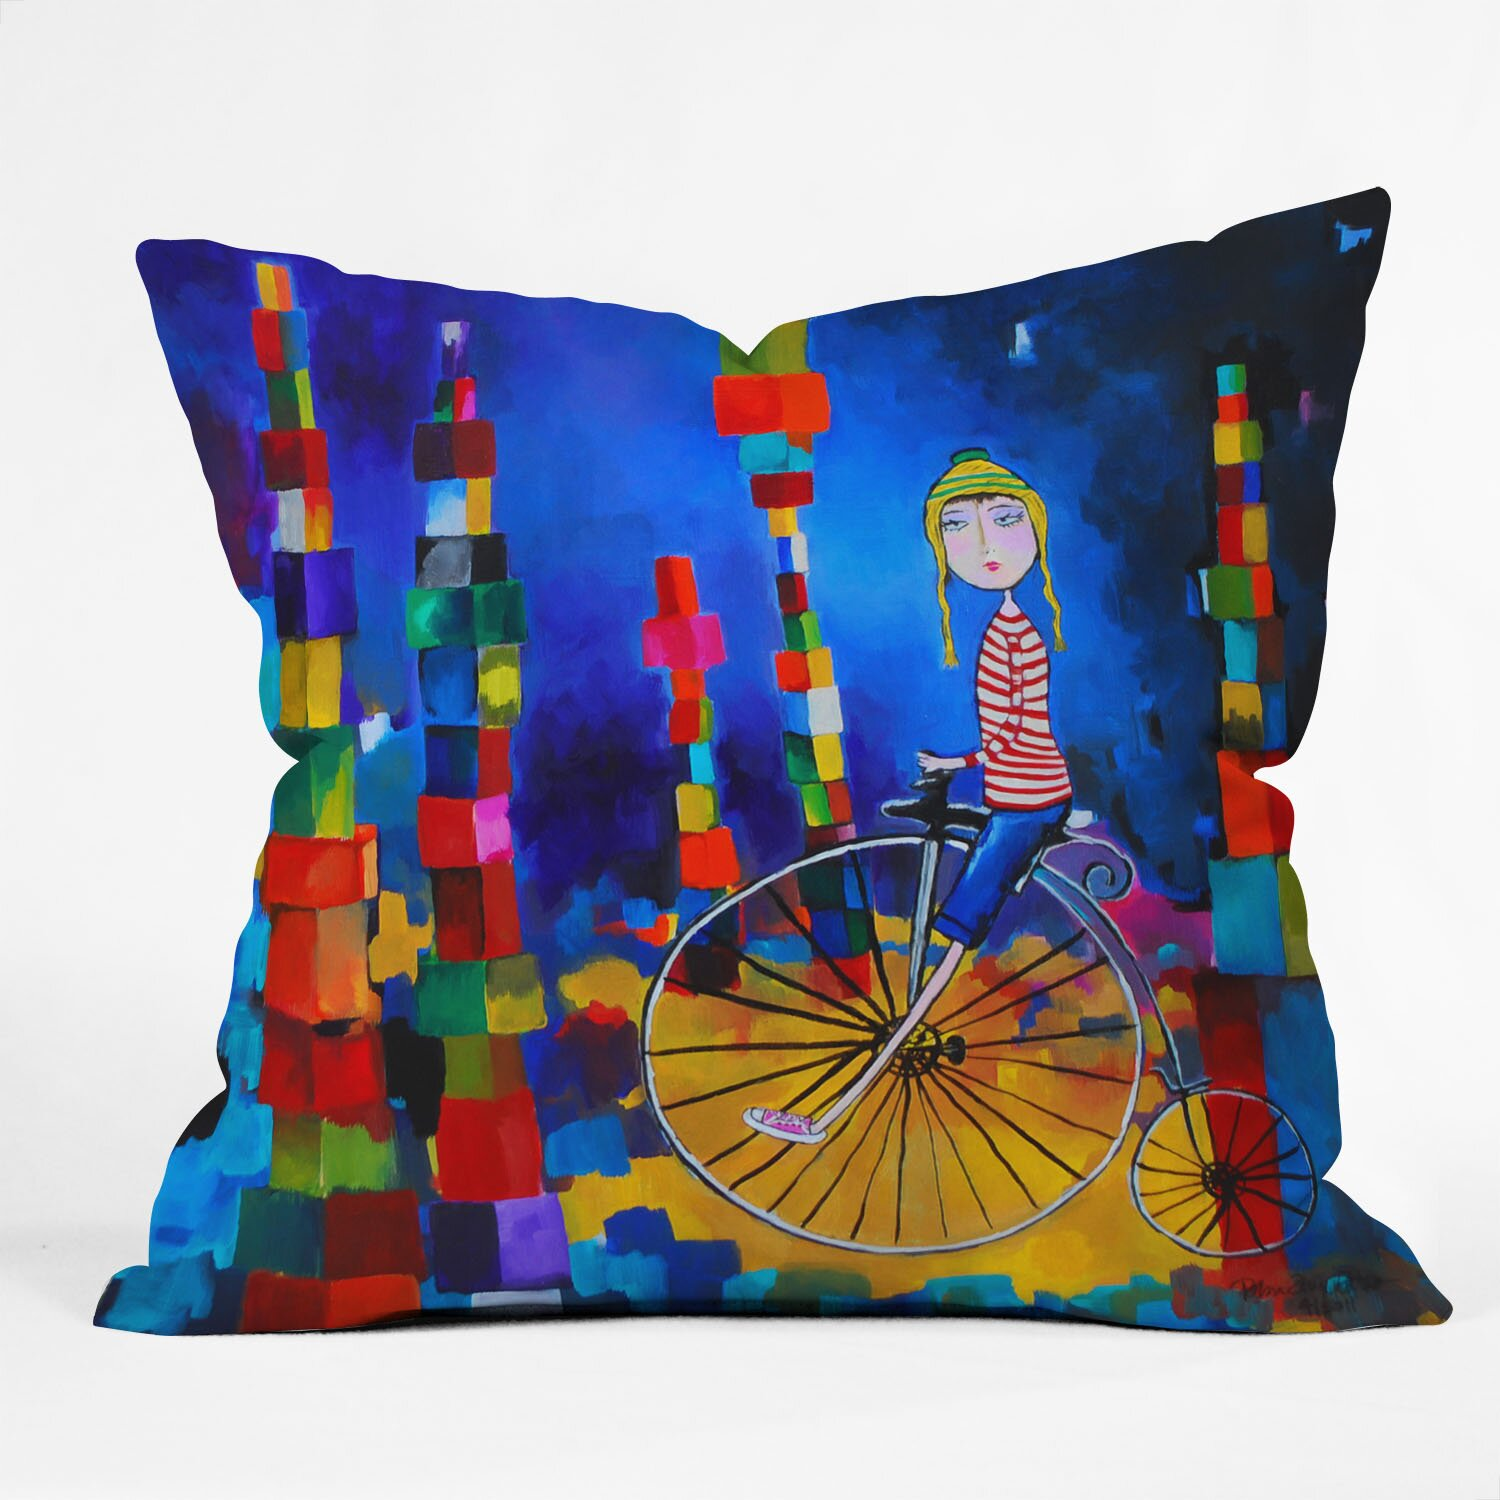 DENY Designs Robin Faye Gates Out of Bounds Throw Pillow & Reviews Wayfair